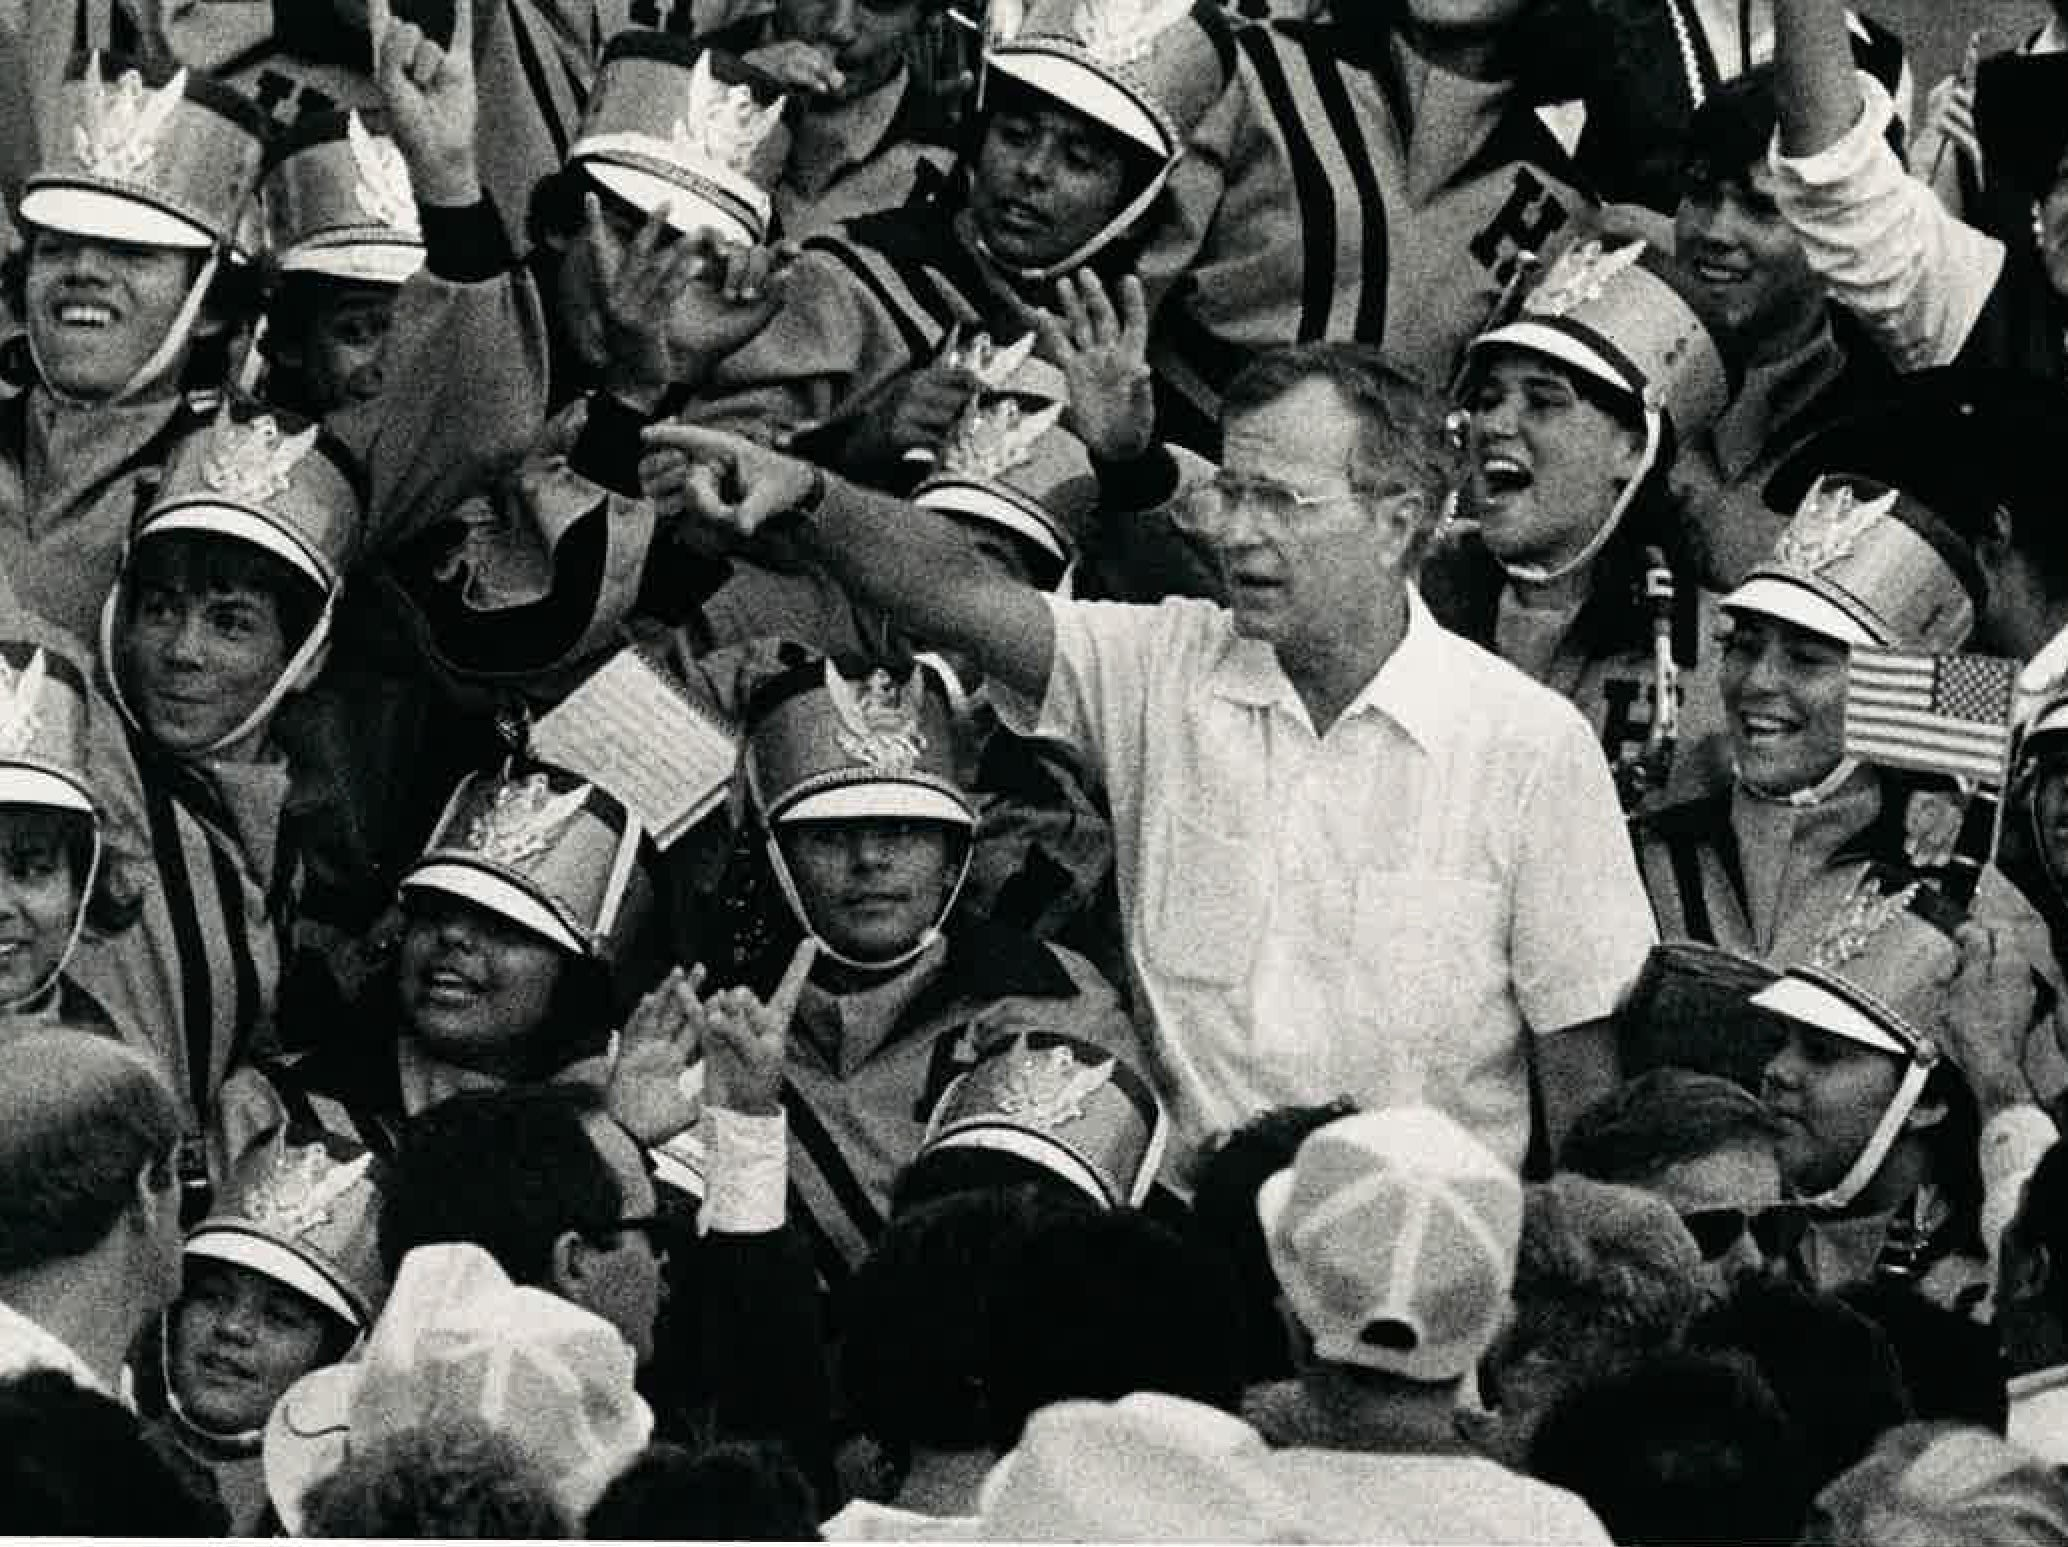 Vice President George H.W. Bush points out his wife Barbara at the podium as members of the Hebbronville band wave in September 1985.